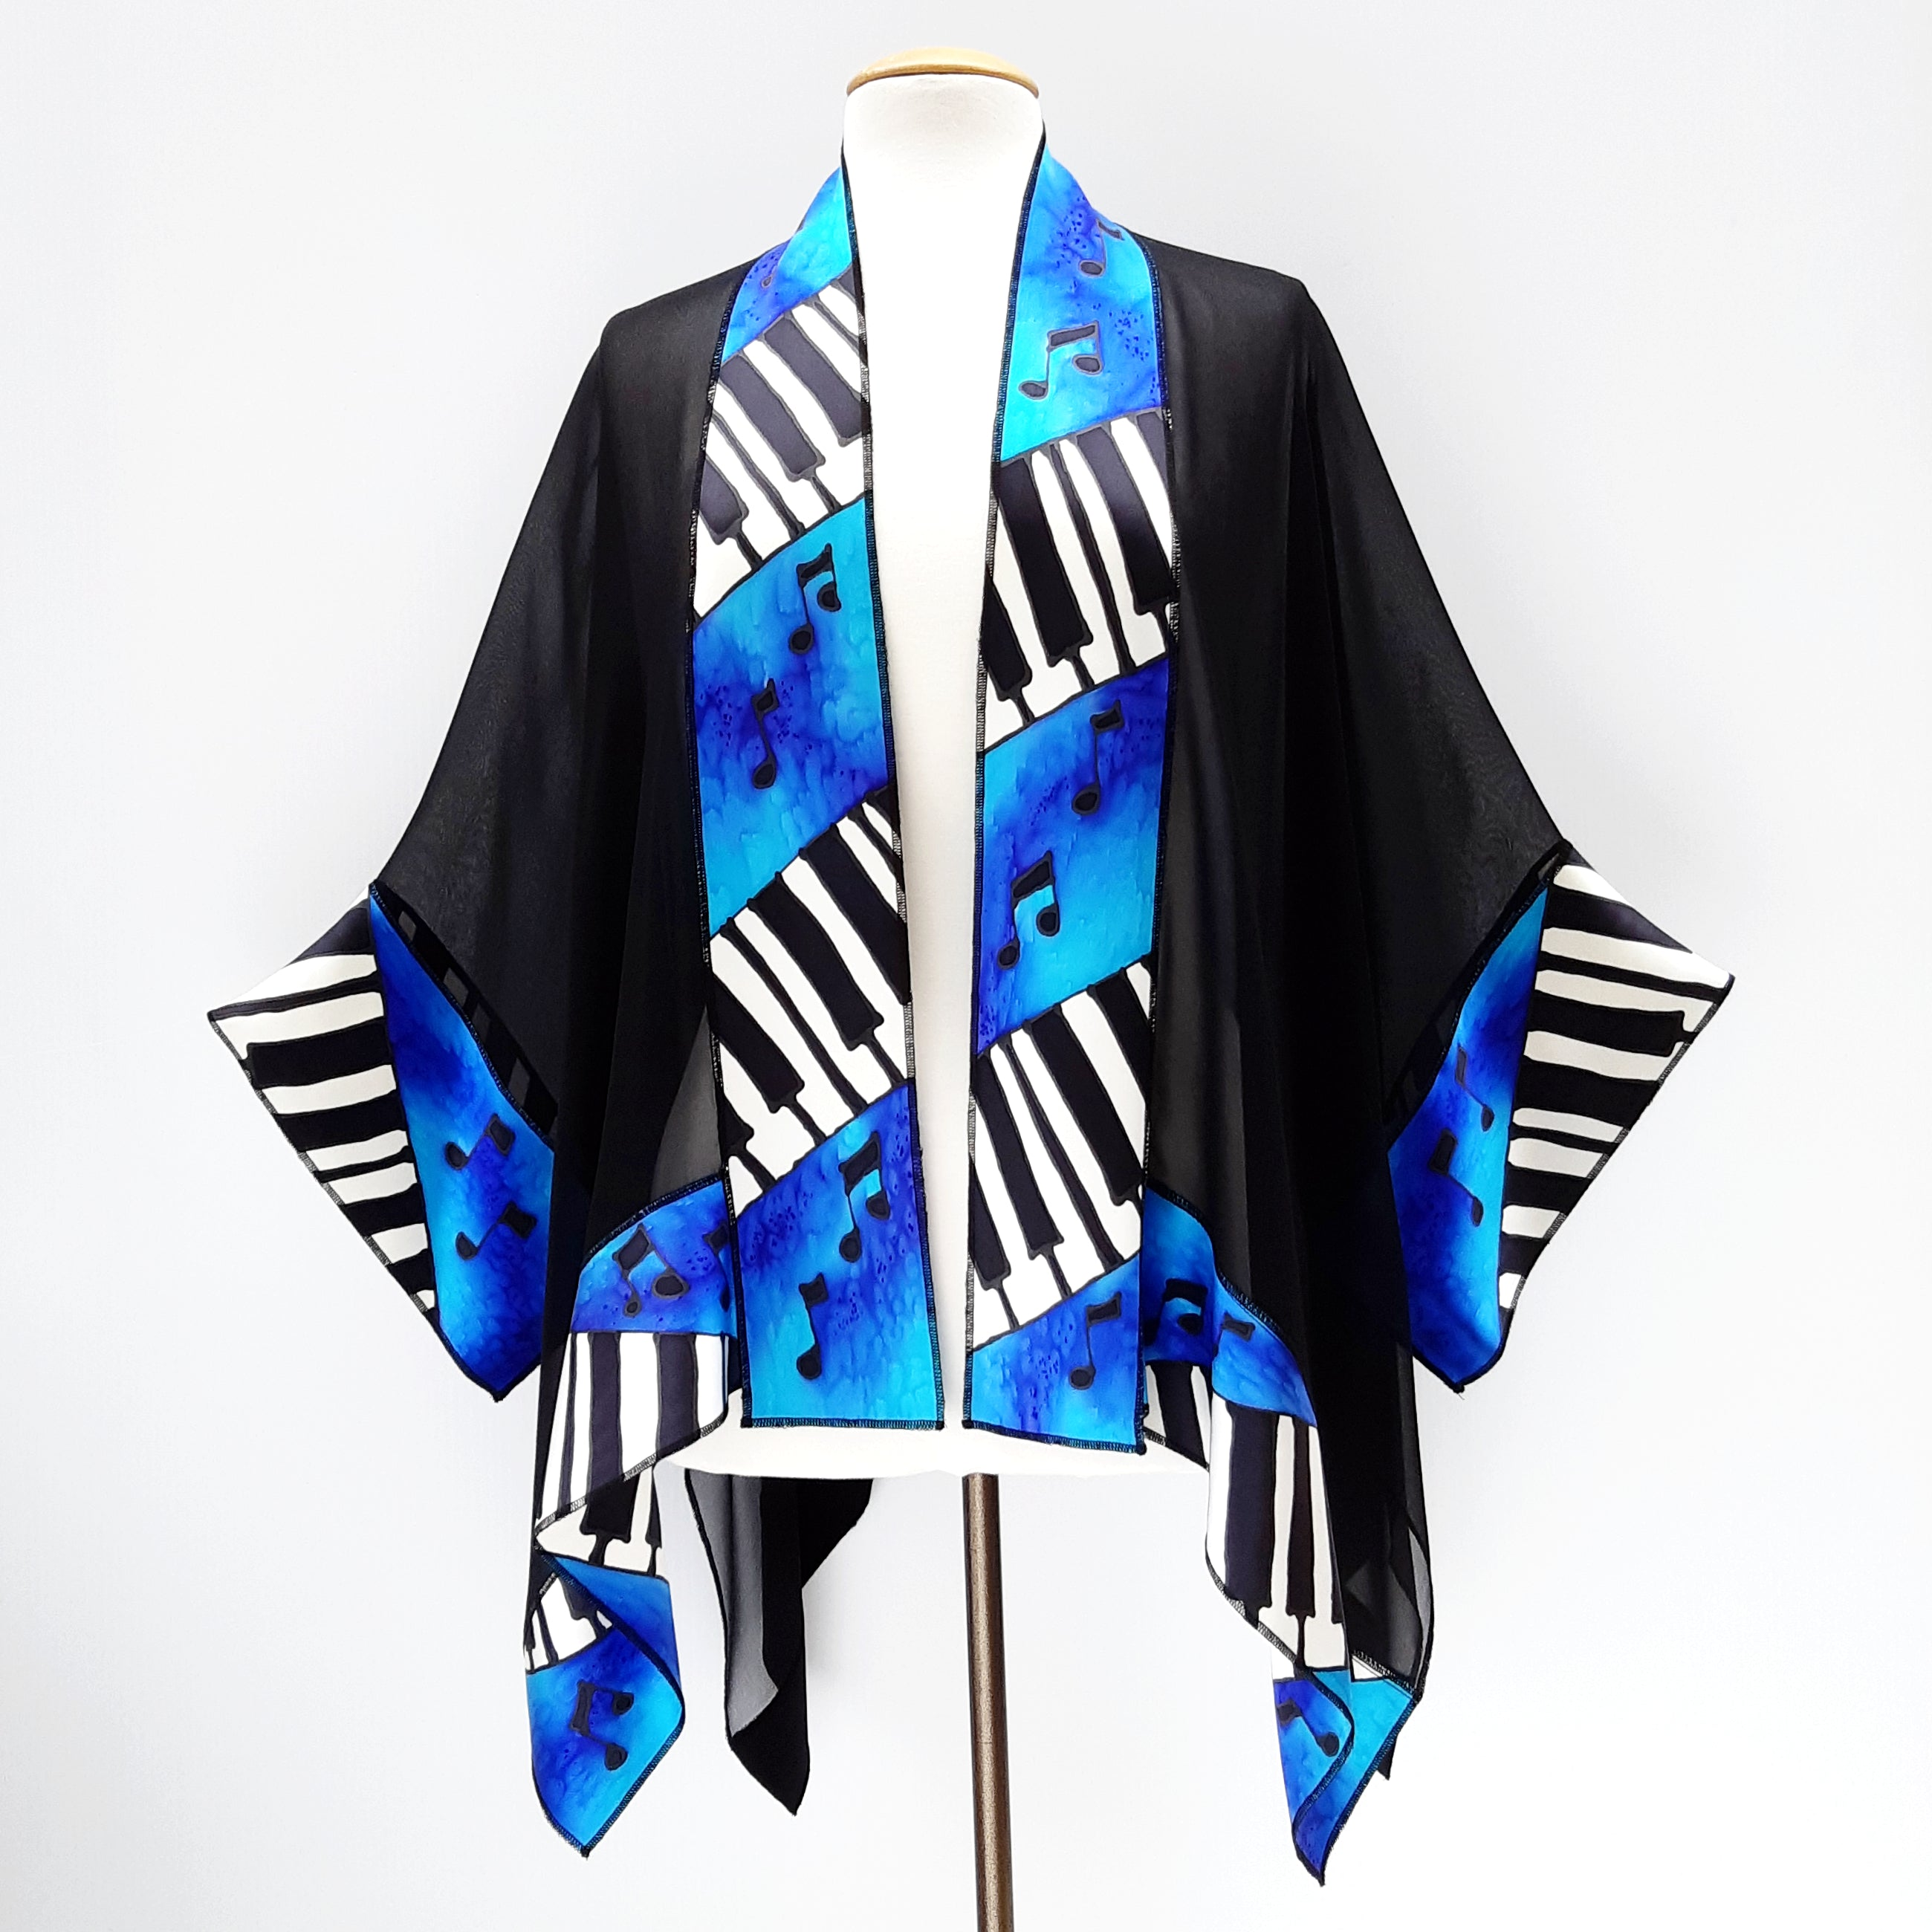 kimono jacket silk painted piano art blue turquoise